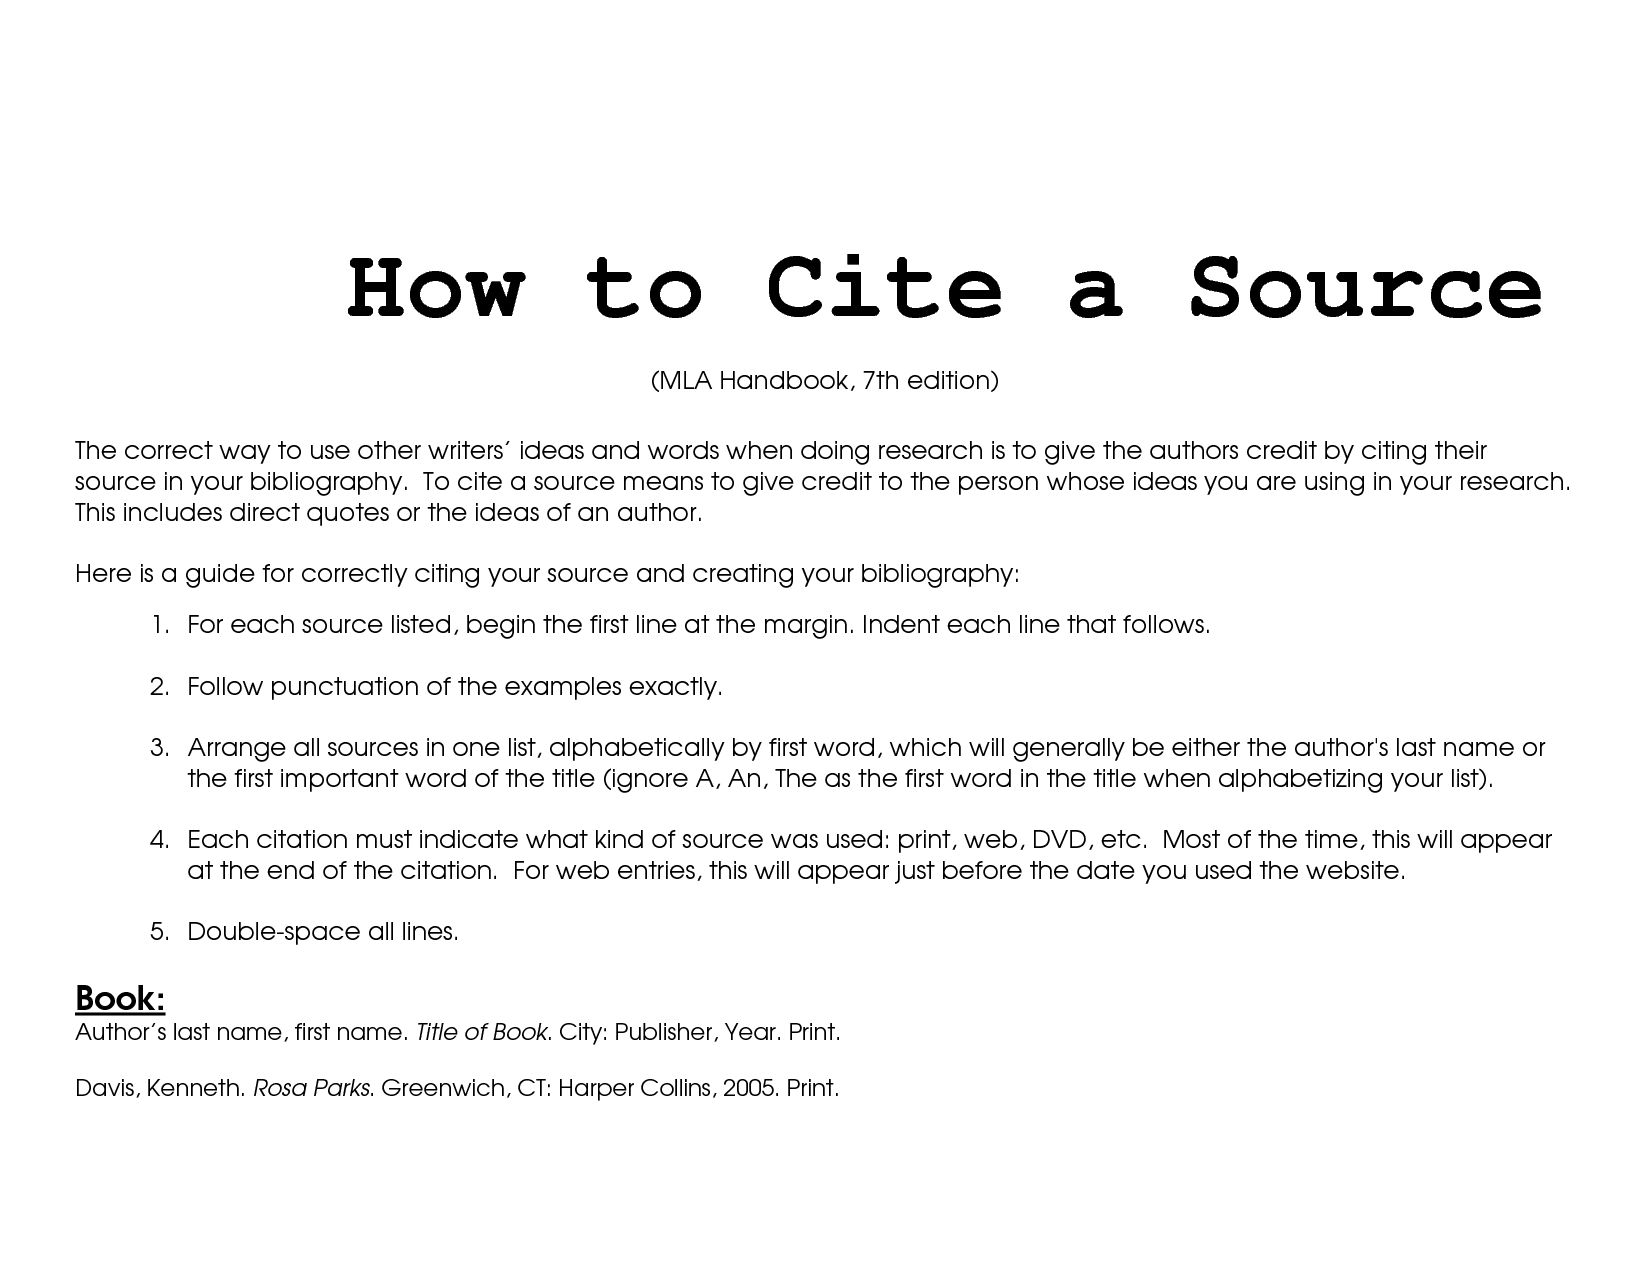 citing sources in mla style - enc1102_libraryinstruction - libguides